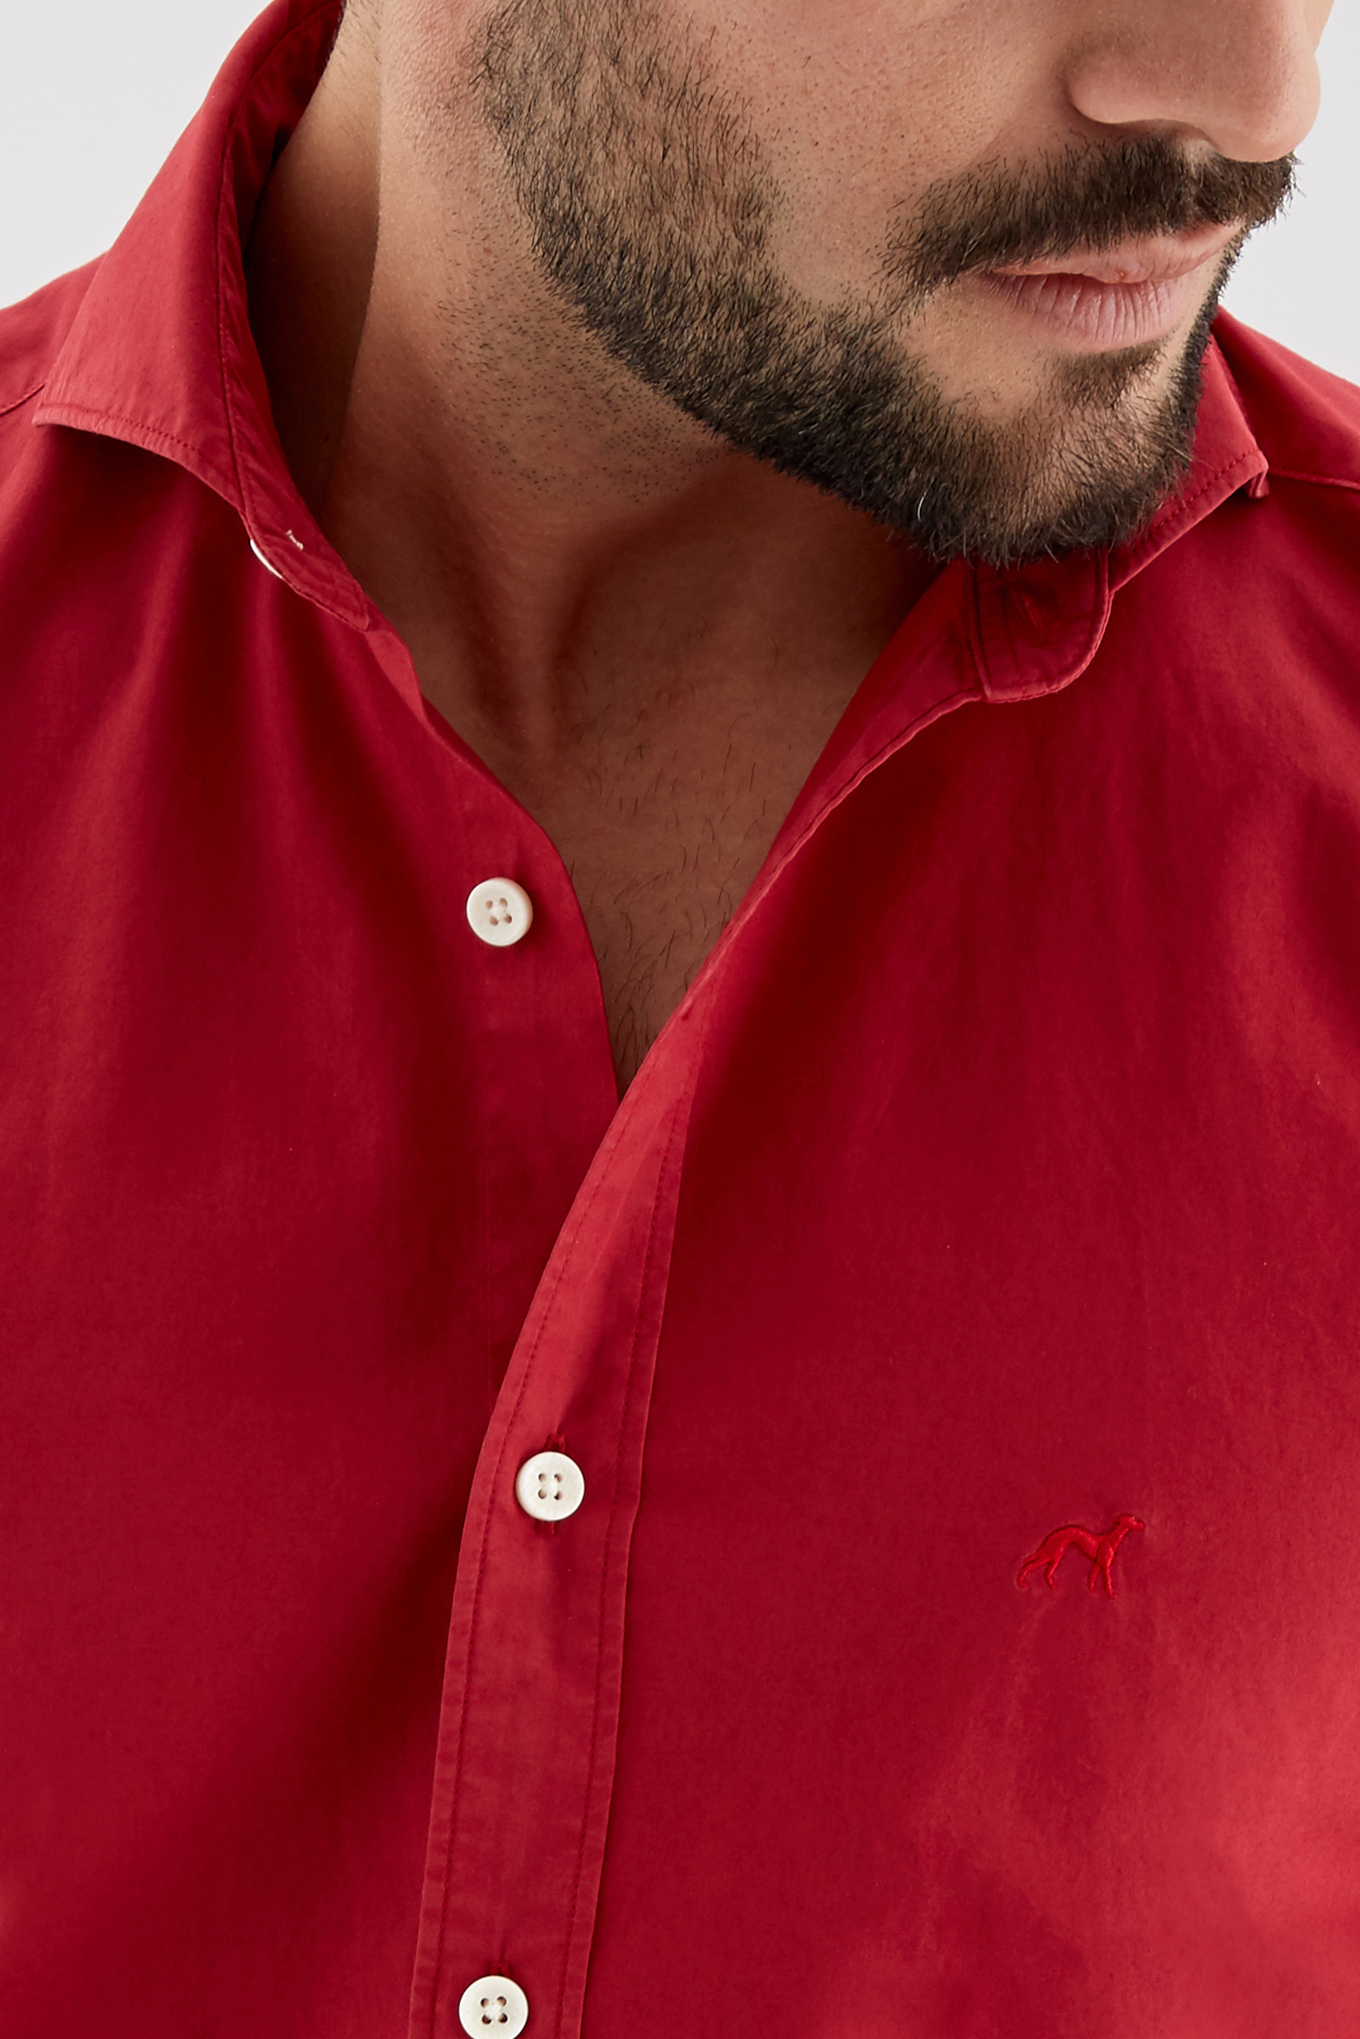 Shirt Red Sport Man